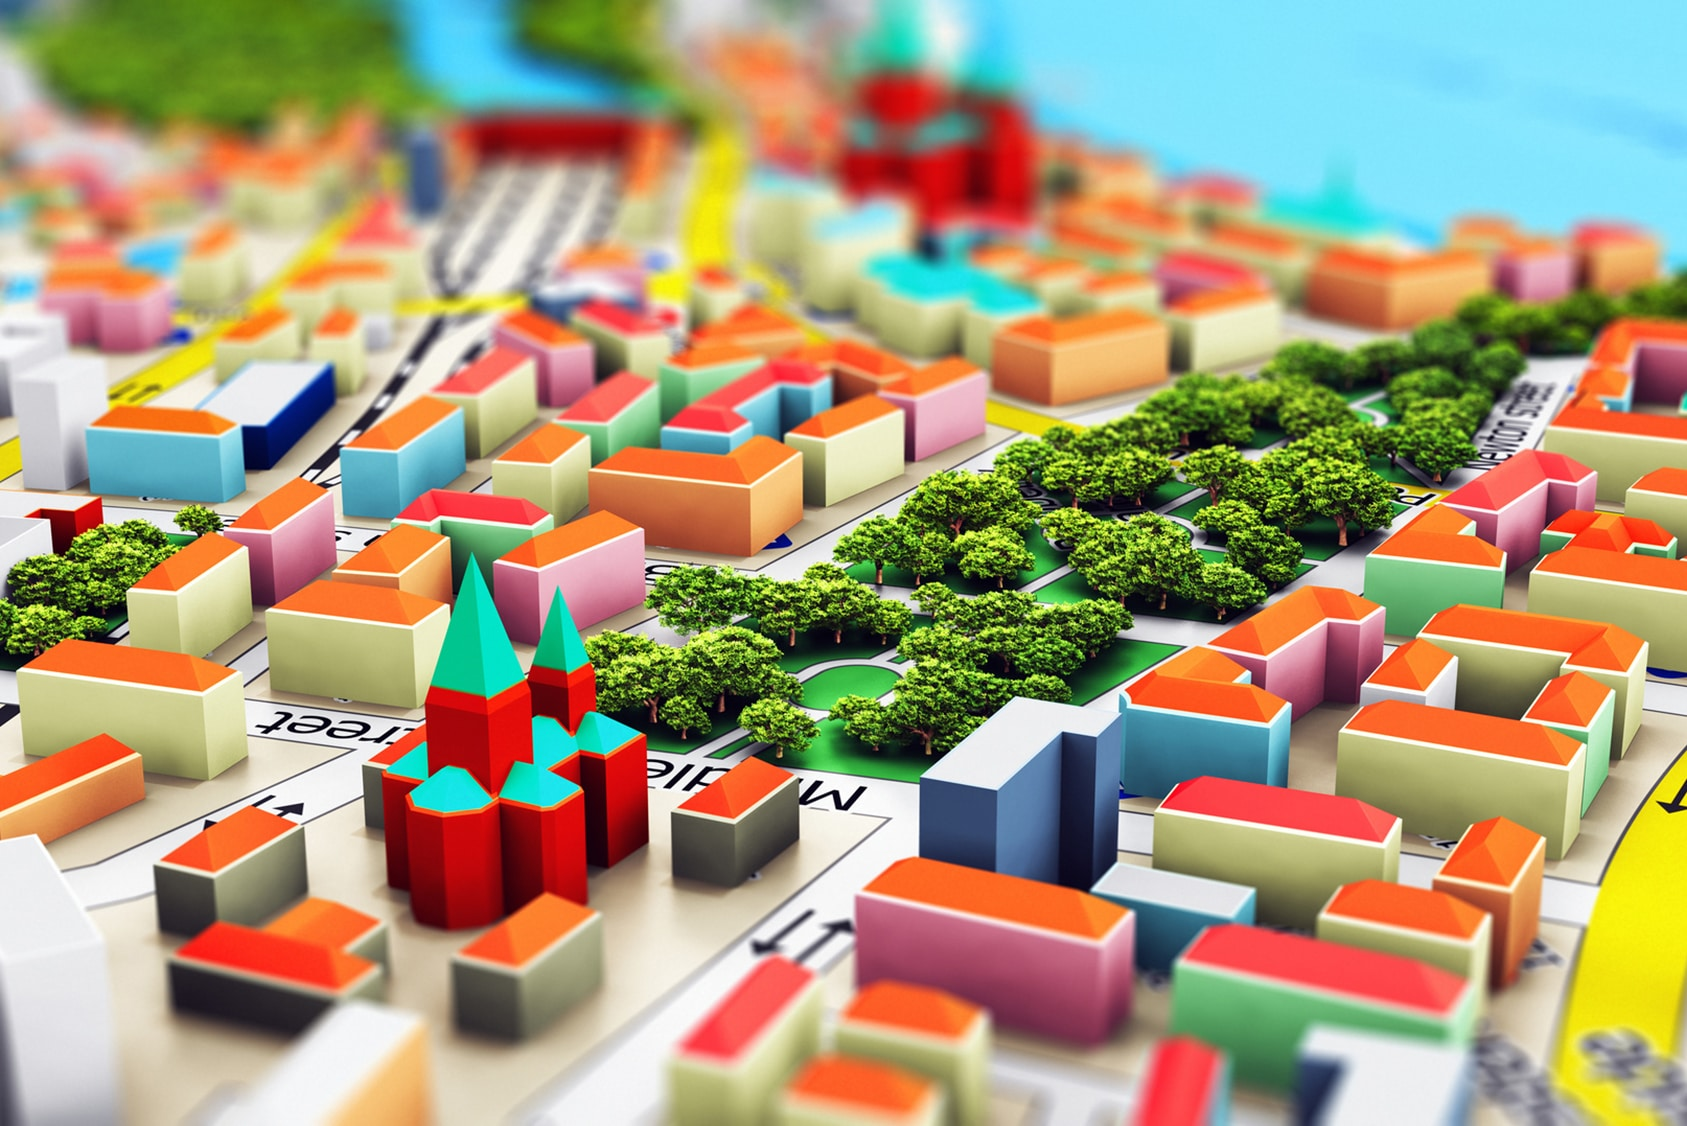 Pv e townplanners professional town planning - What is urban planning and design ...